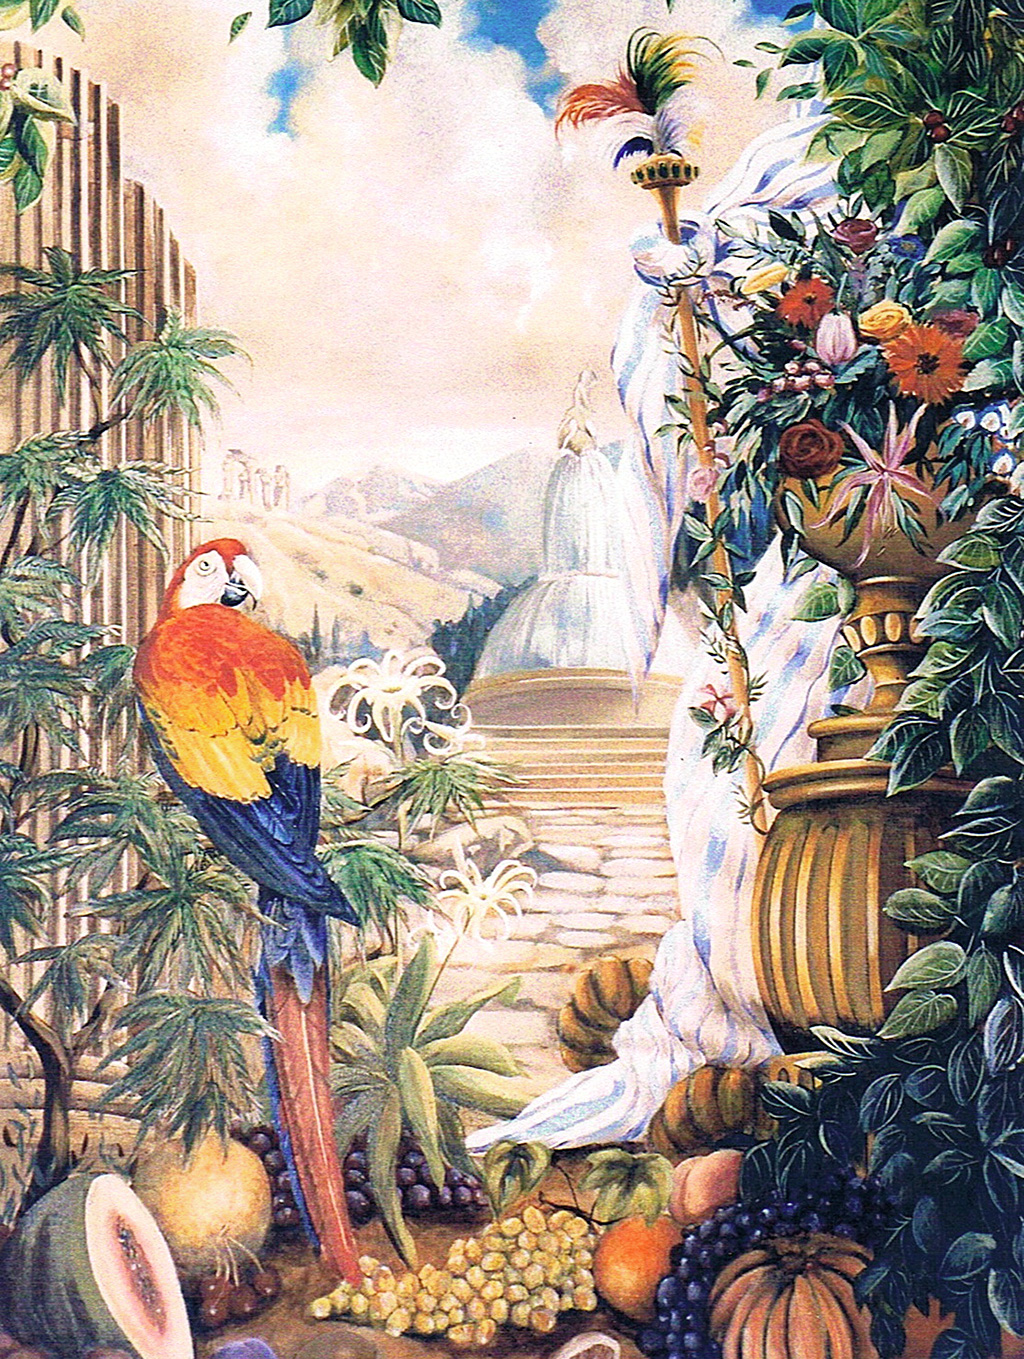 Panel detail of murals painted for the ballroom at the Island Shangri La Hotel, Hong Kong.